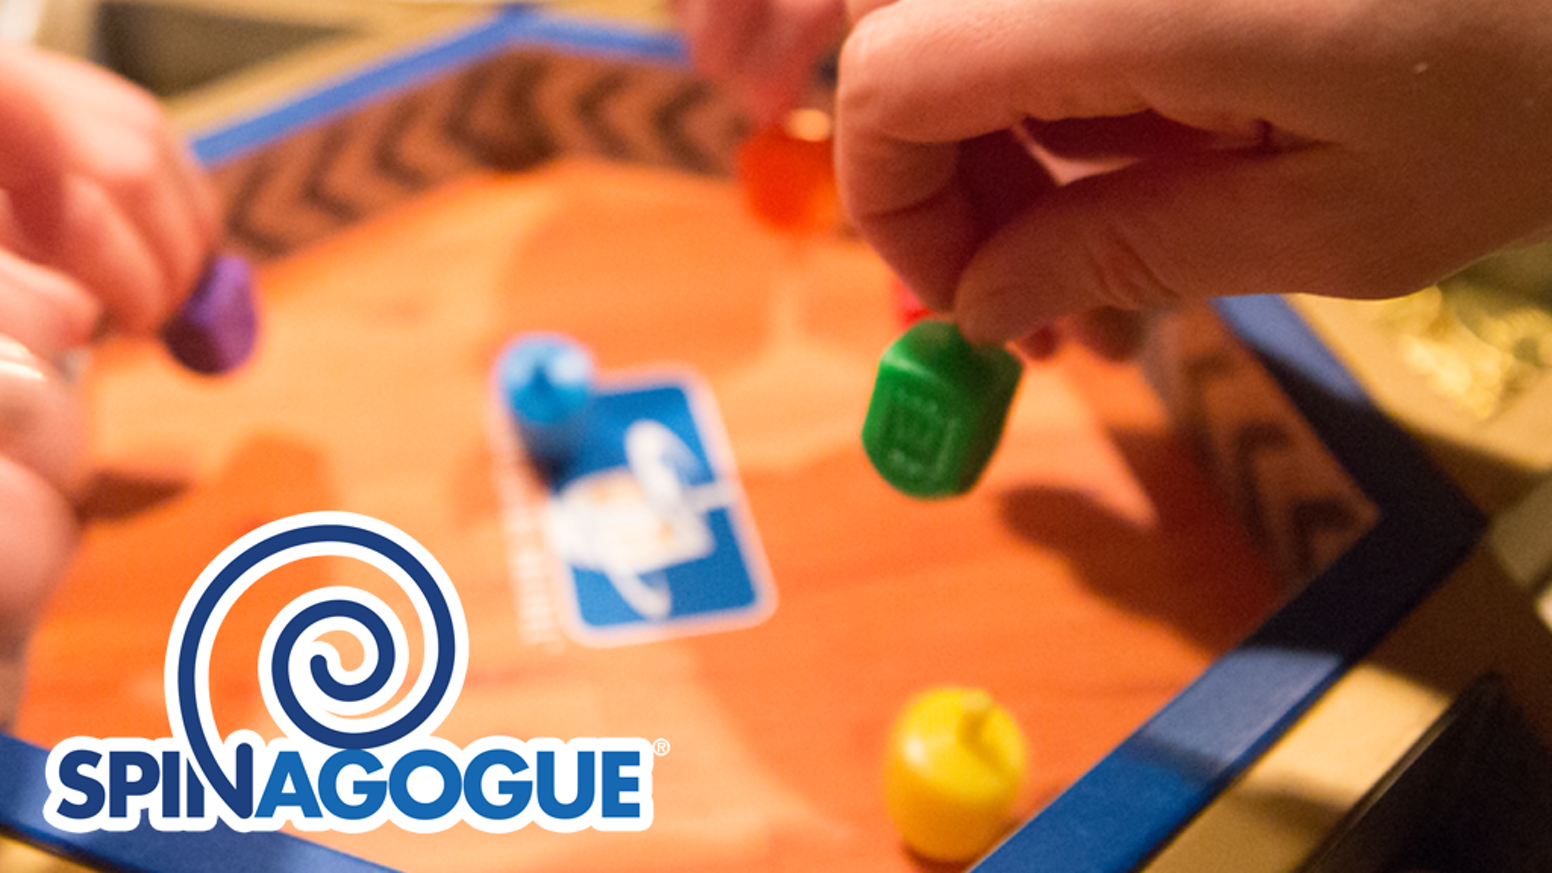 Spinagogue The First Ever Dreidel Spinning Stadium By Eric Pavony